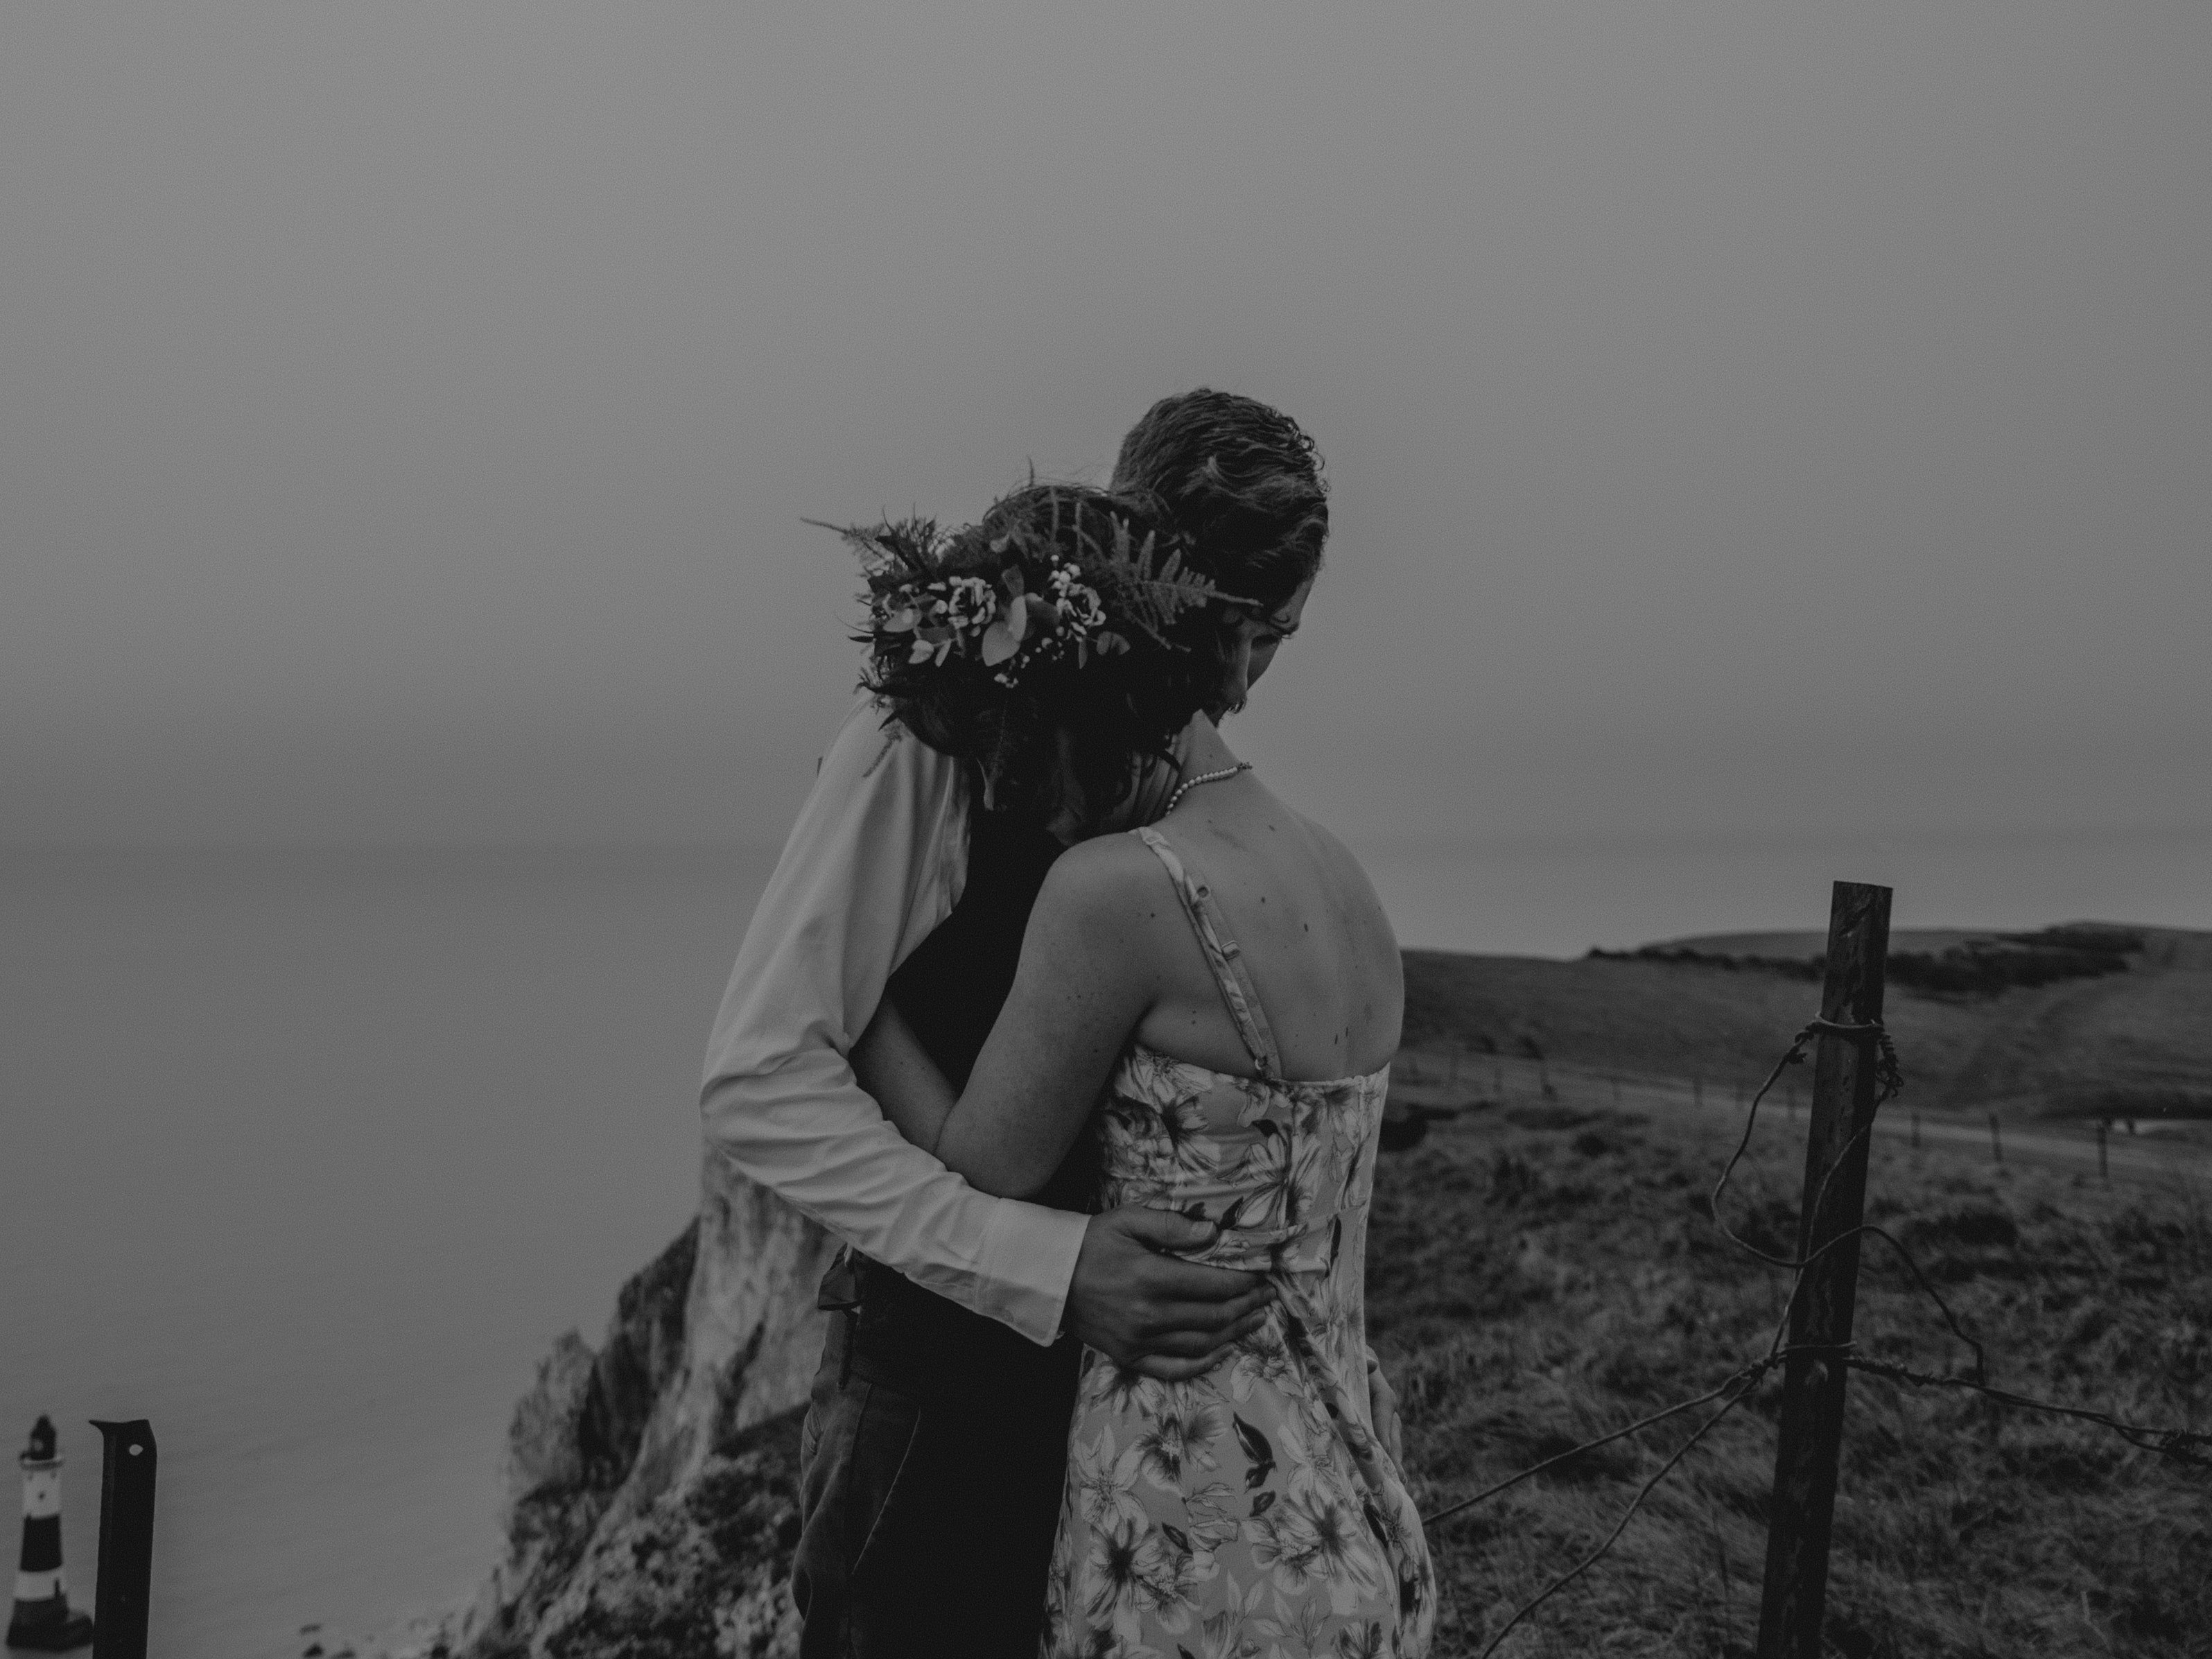 Man and woman embracing each other. | Source: Pexels/ Flora Westbrook